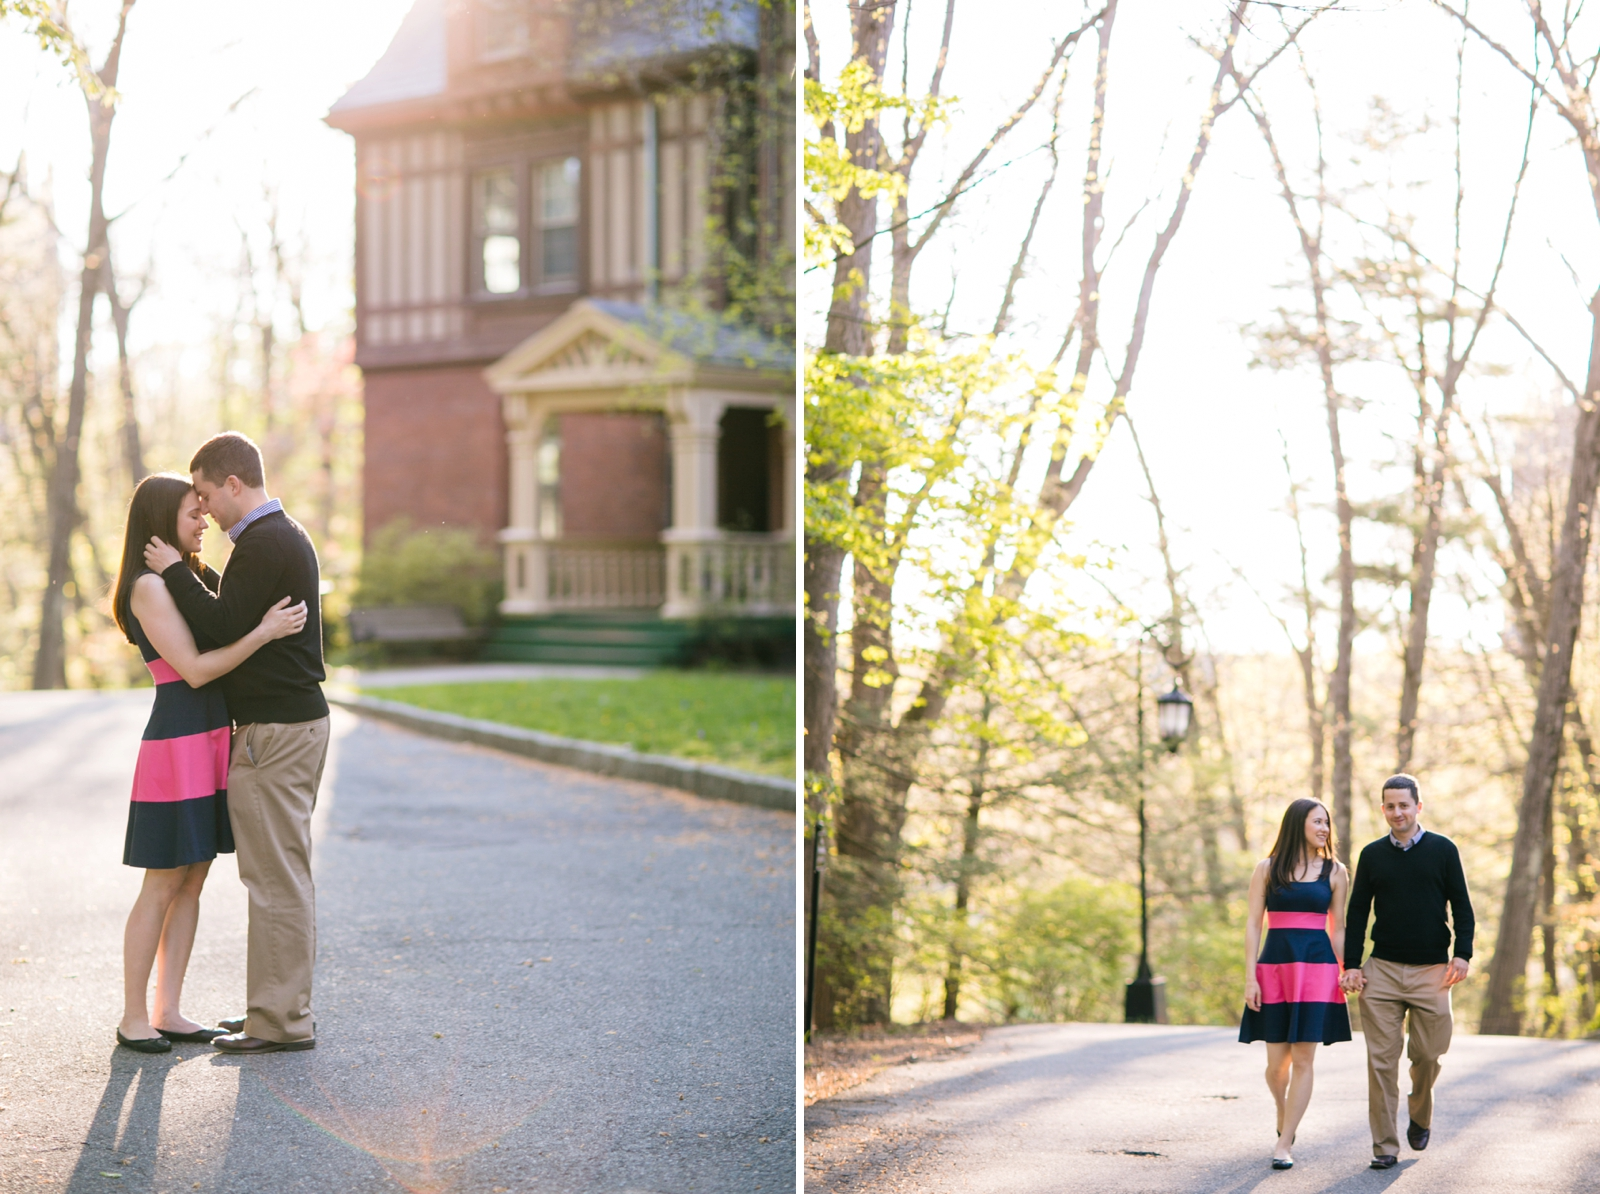 Intimate engagement portraits with golden hour light, couple walking together on Wellesley campus